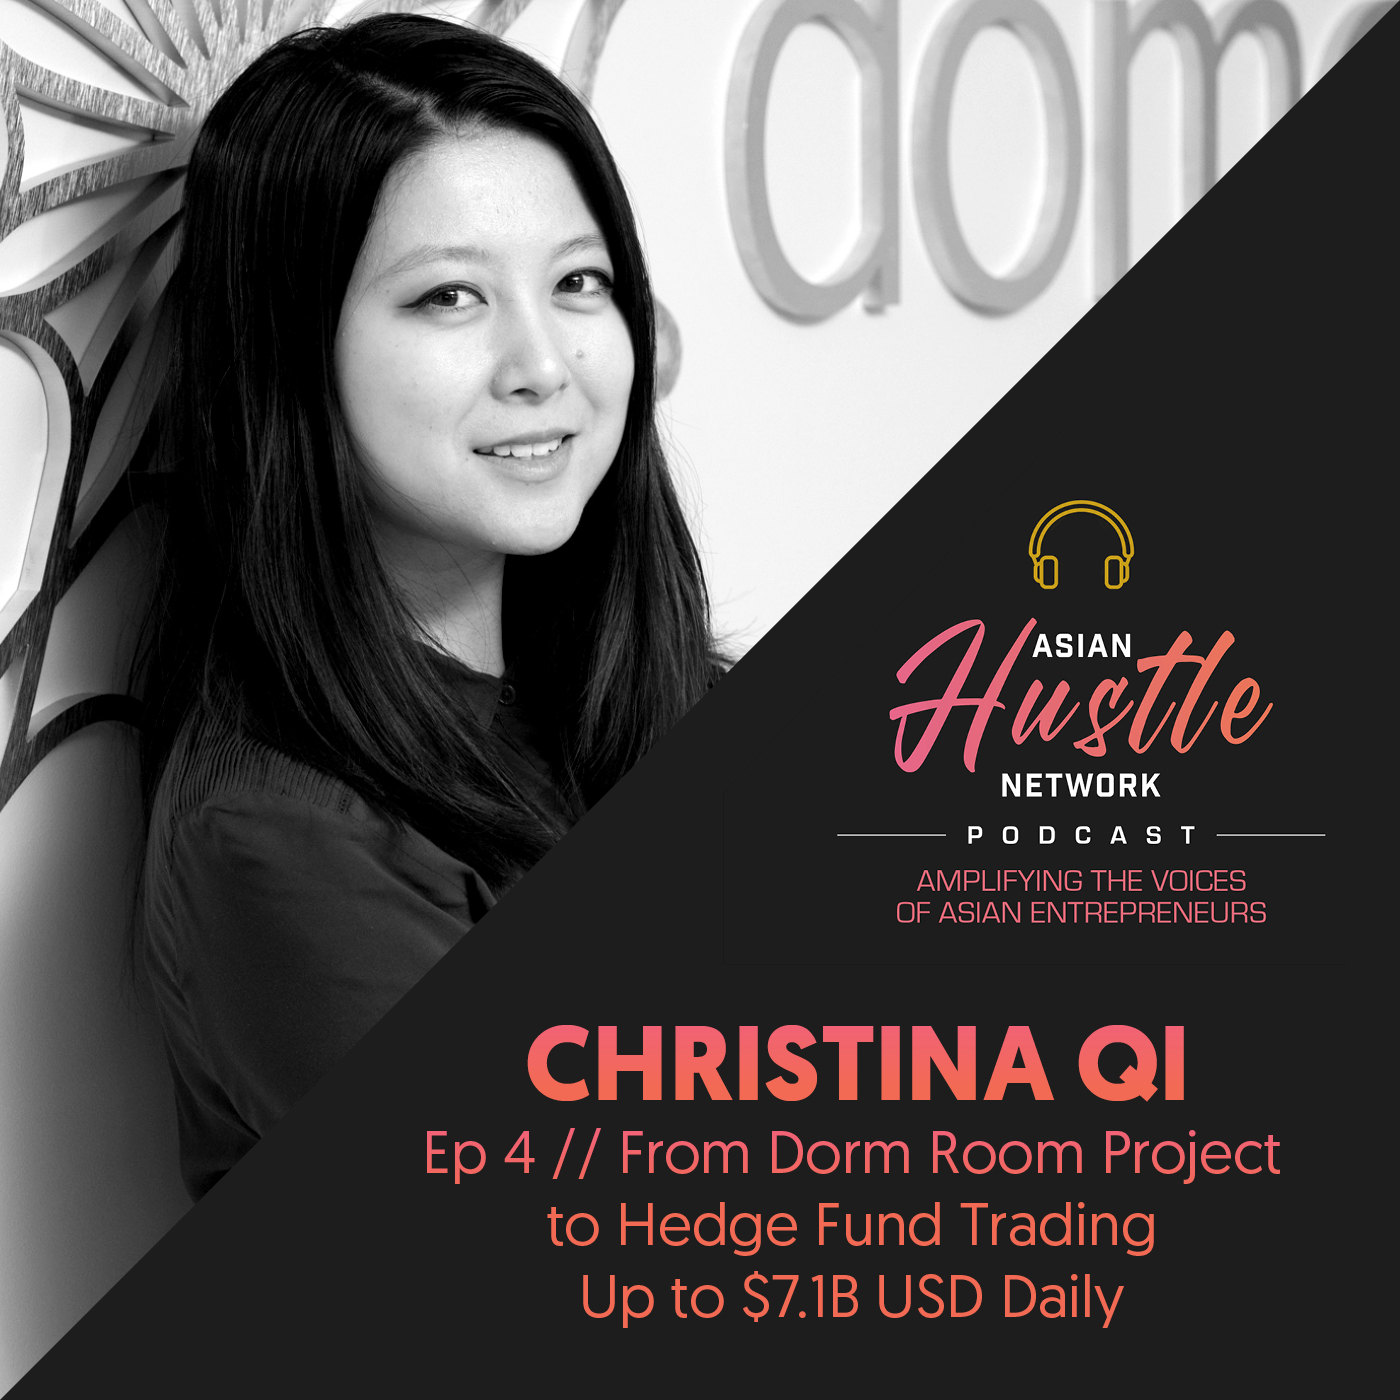 www.asianhustlenetwork.com: Christina Qi // Ep 4 // From Dorm Room Project to Hedge Fund Trading Up to .1B USD Daily